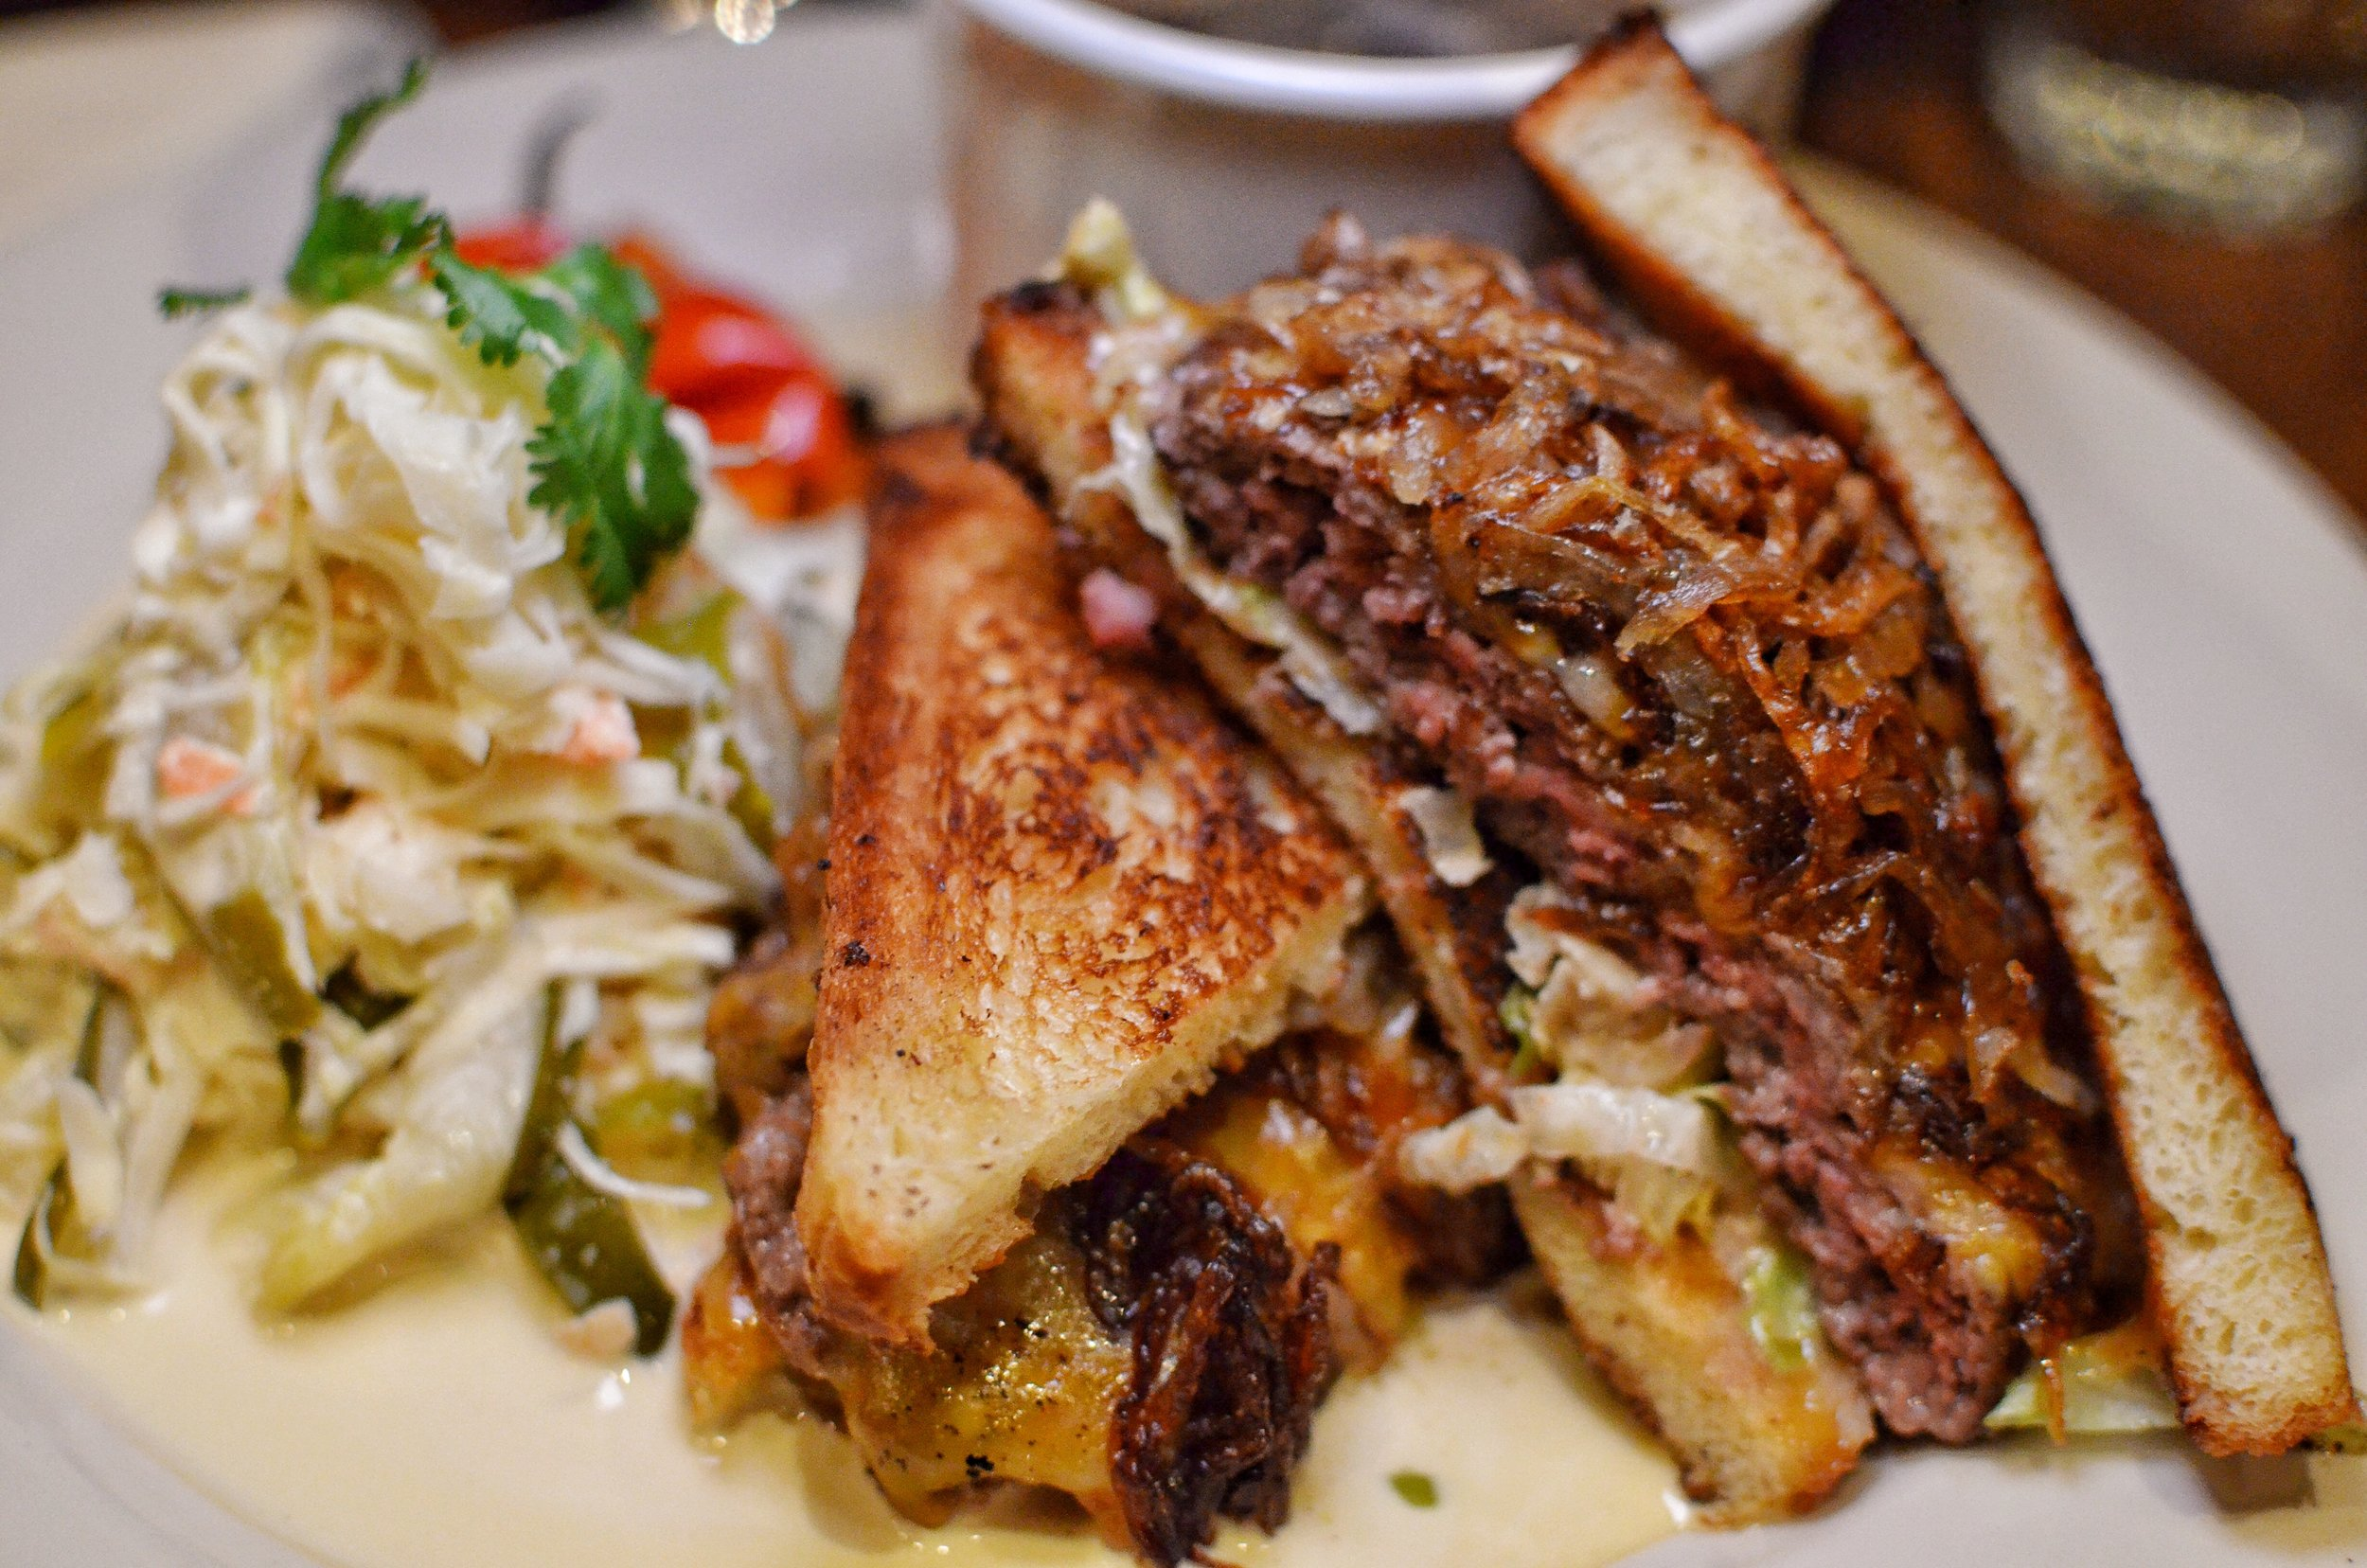 Patty melt on buttermilk bread, American cheese, Maison special sauce served with coleslaw and au jus